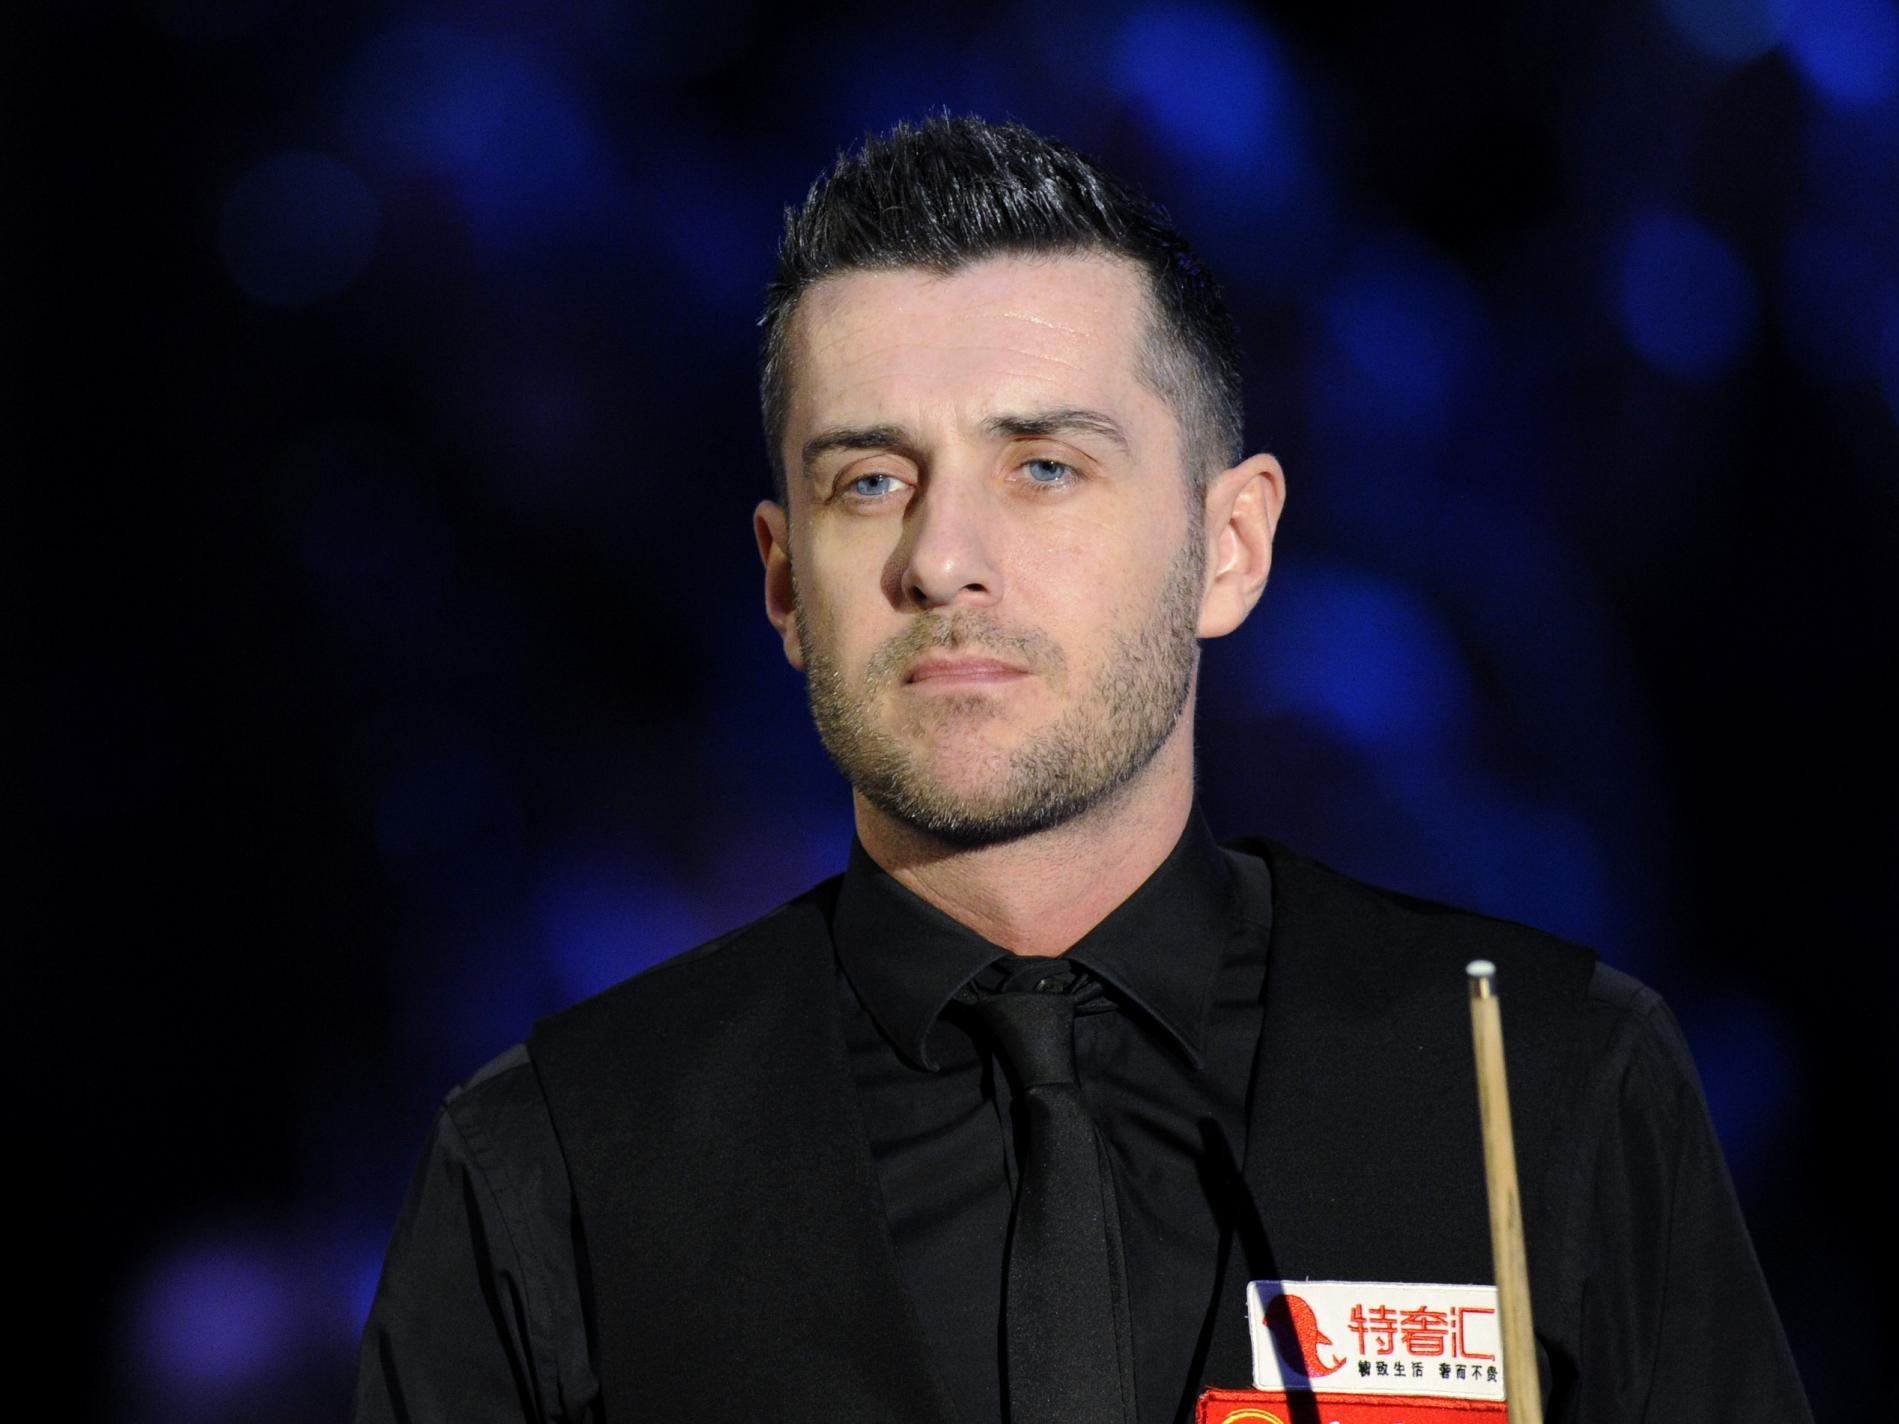 Mark Selby criticises 'disrespectful' Ronnie O'Sullivan after semi-final defeat at World Snooker Championship